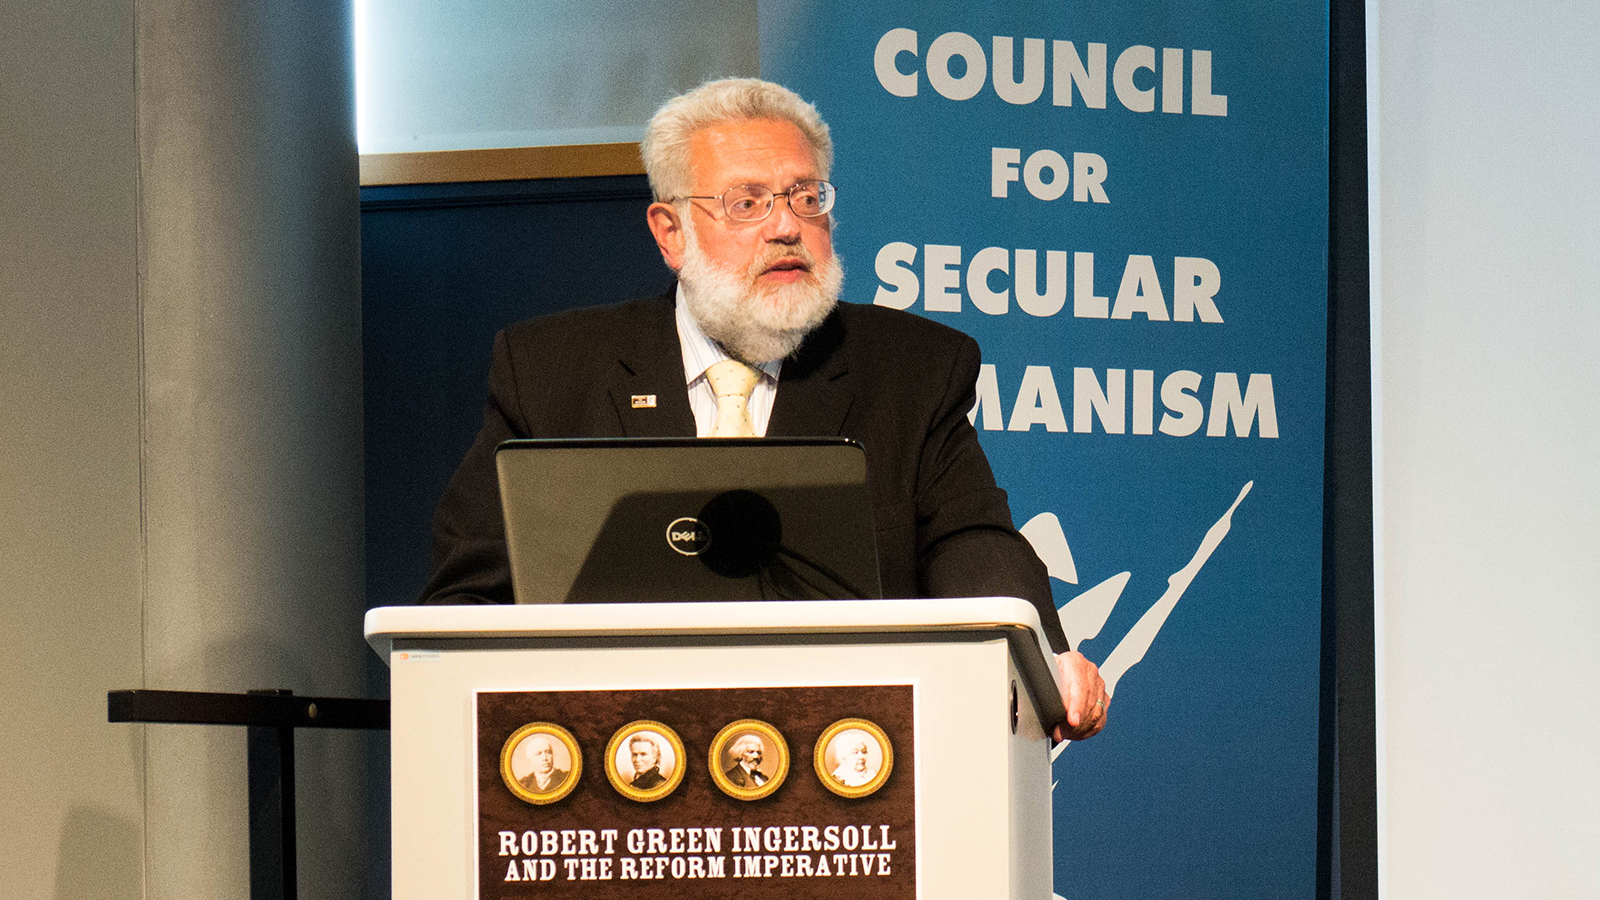 Council for Secular Humanism Executive Director and Ingersoll Museum director Tom Flynn gives a presentation on the Freethought Trail at the Center for Inquiry, Amherst, New York, Aug. 16, 2014. Photo by Monica Harmsen/Creative Commons